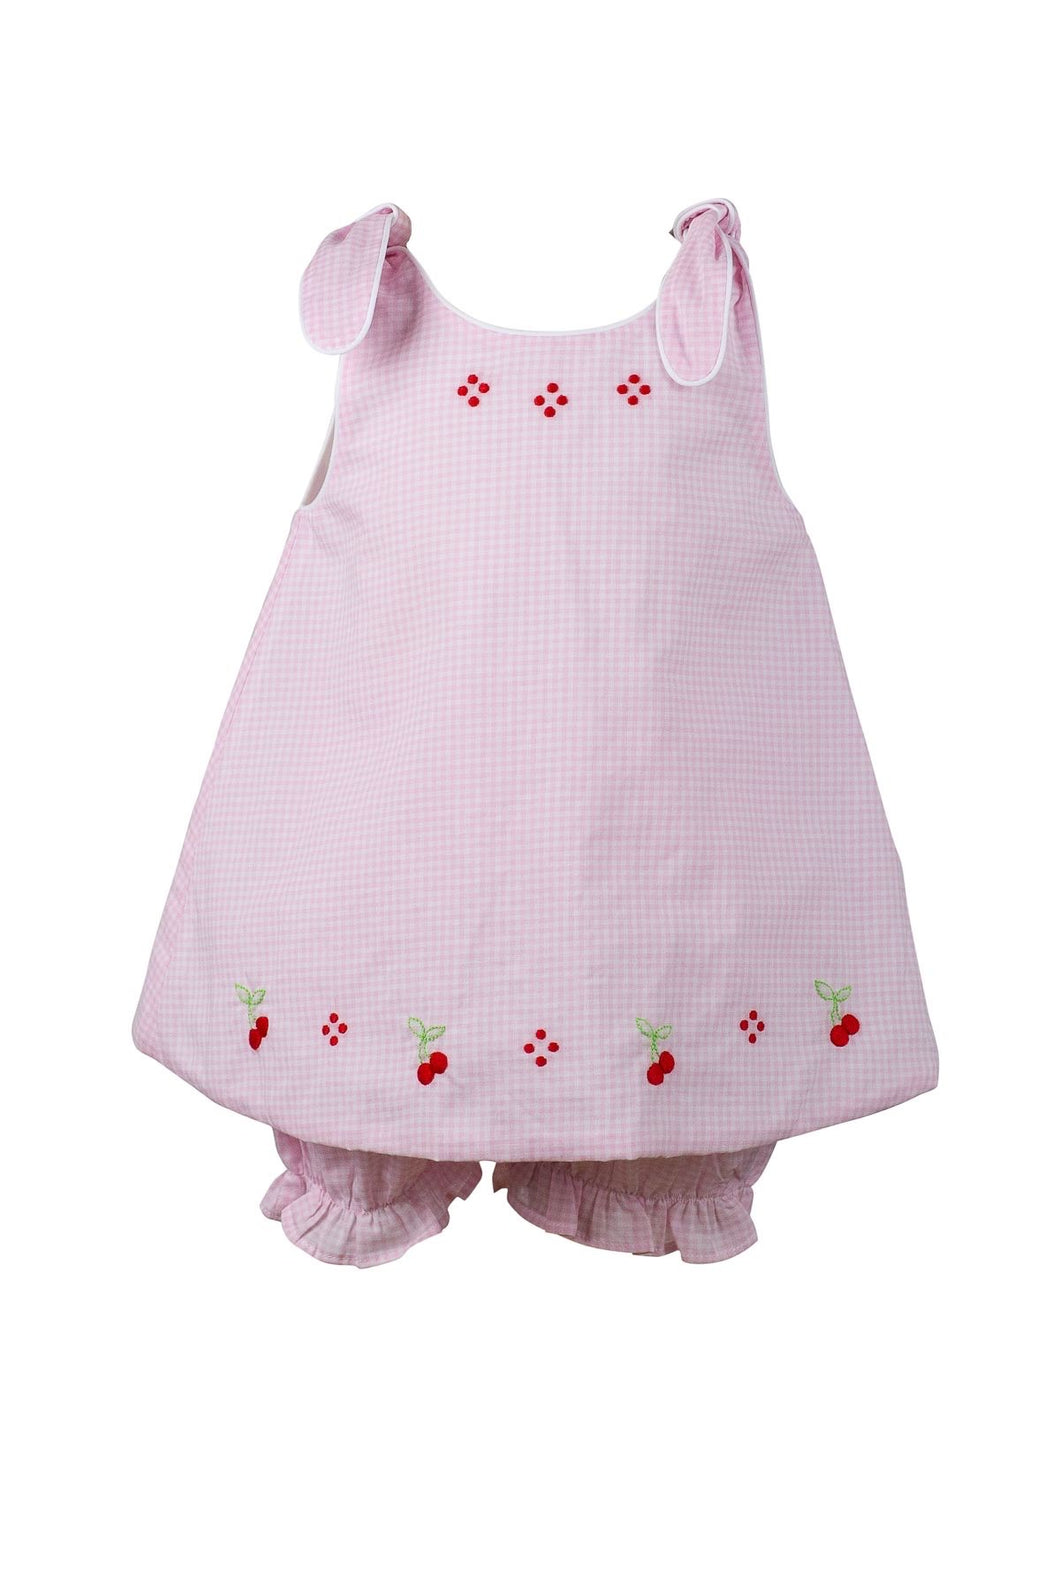 Philippa Cherry Bloomer Set